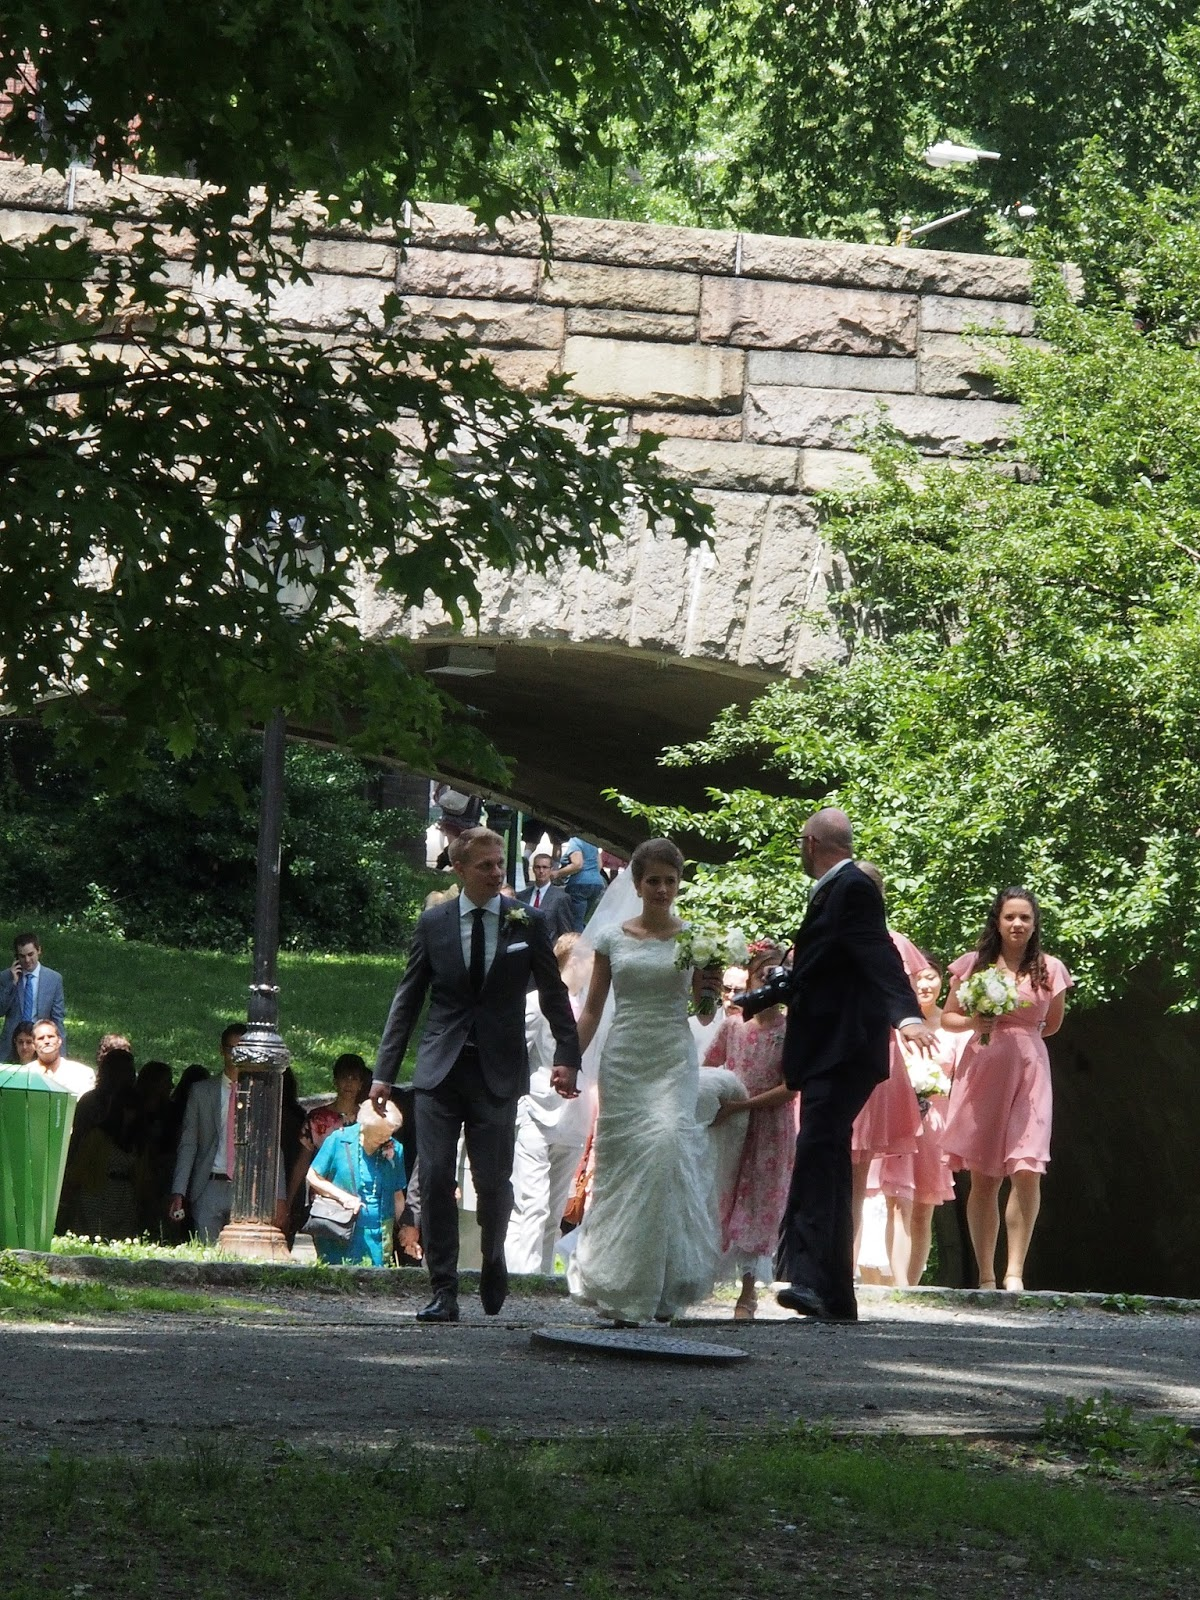 Wedding Party on the Move, #centralpark #nyc #wedding 2014